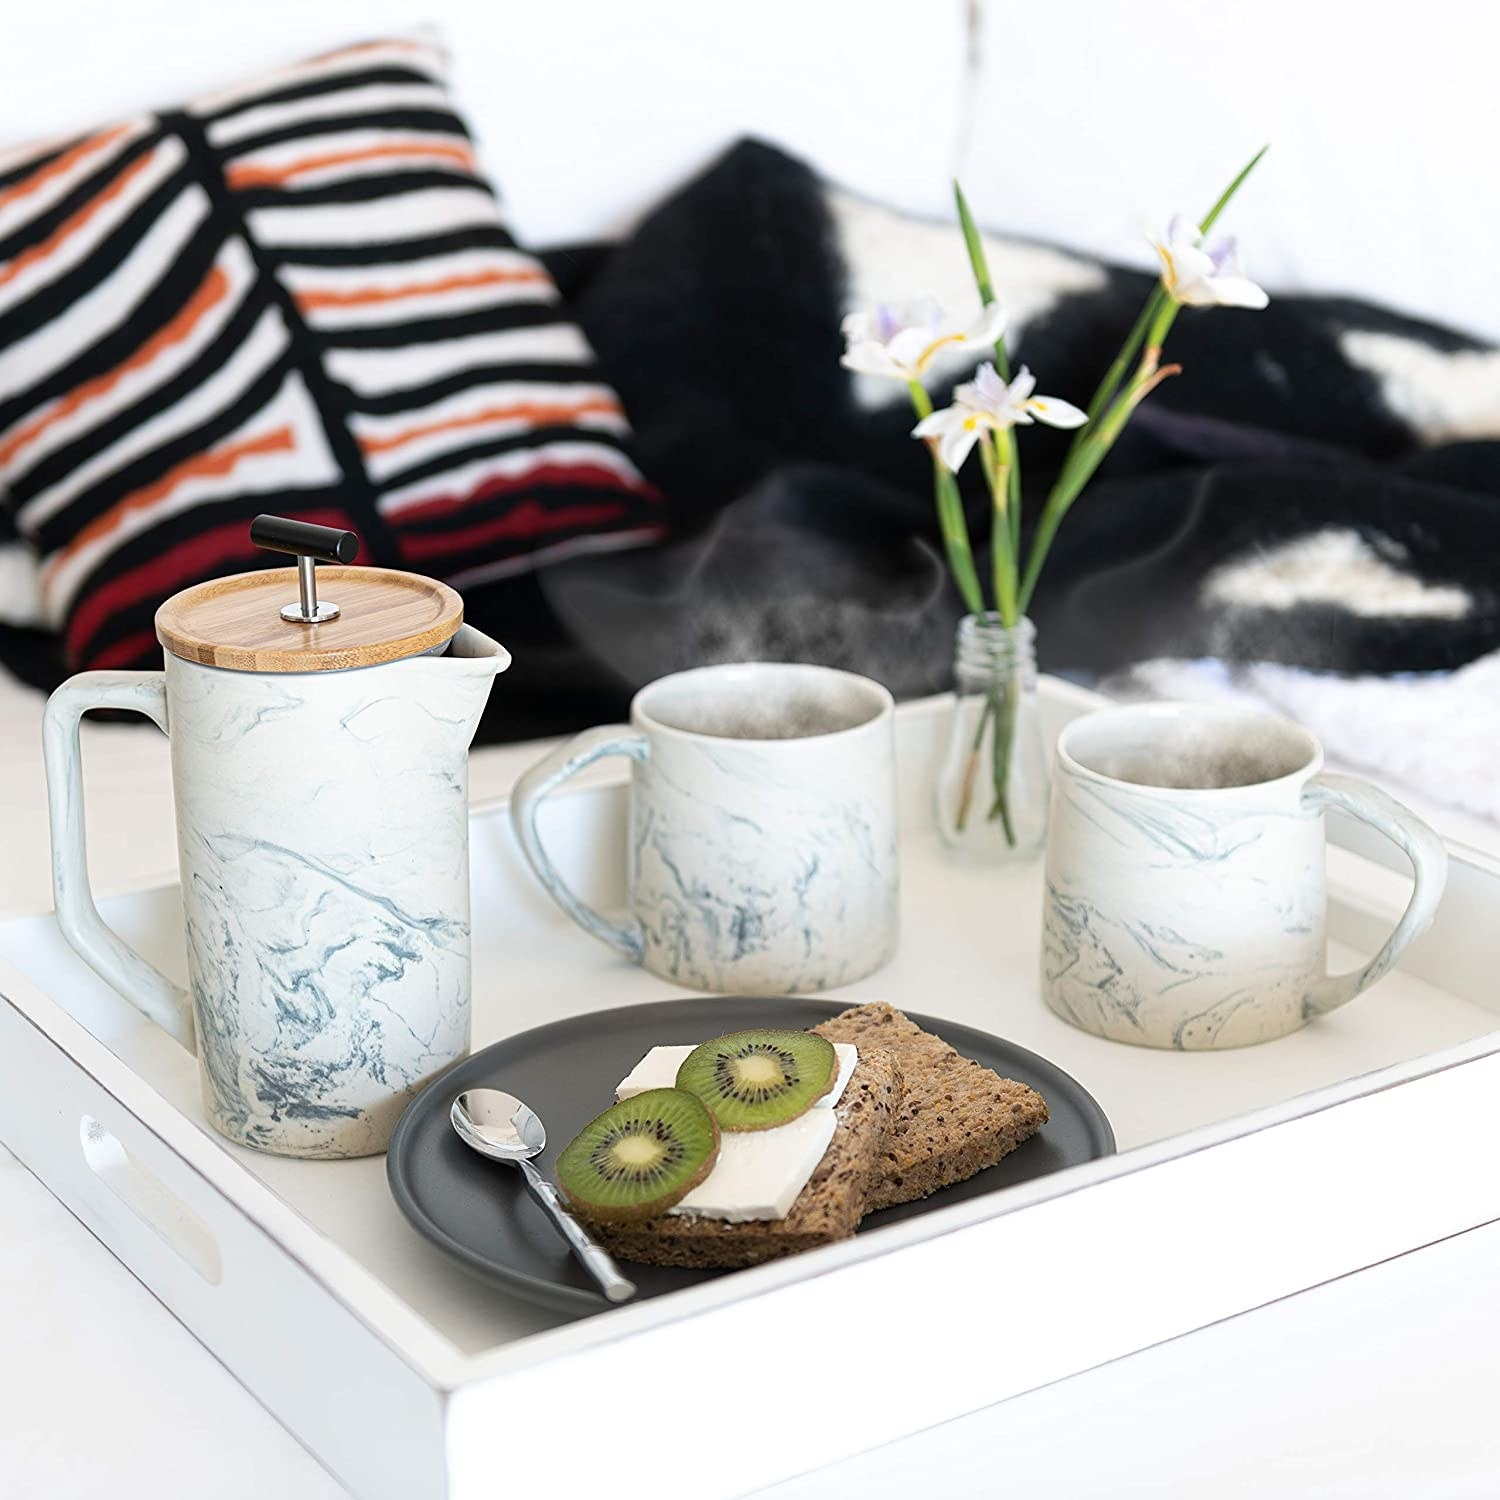 Marble-style ceramic French press on serving tray with two matching coffee cups